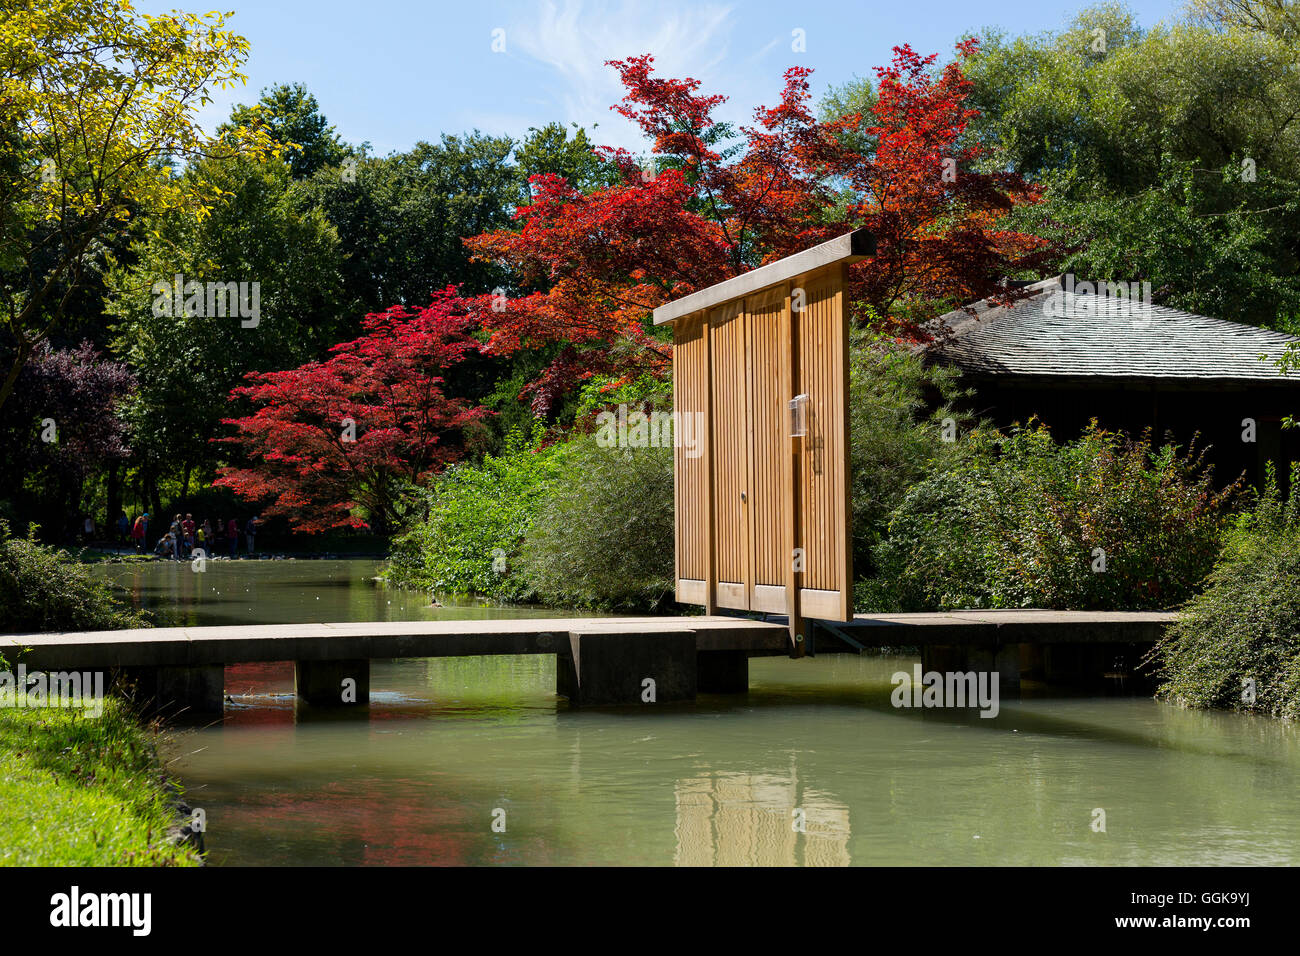 Japanese Teahouse in the English Gardens, Munich, Upper Bavaria, Bavaria, Germany - Stock Image